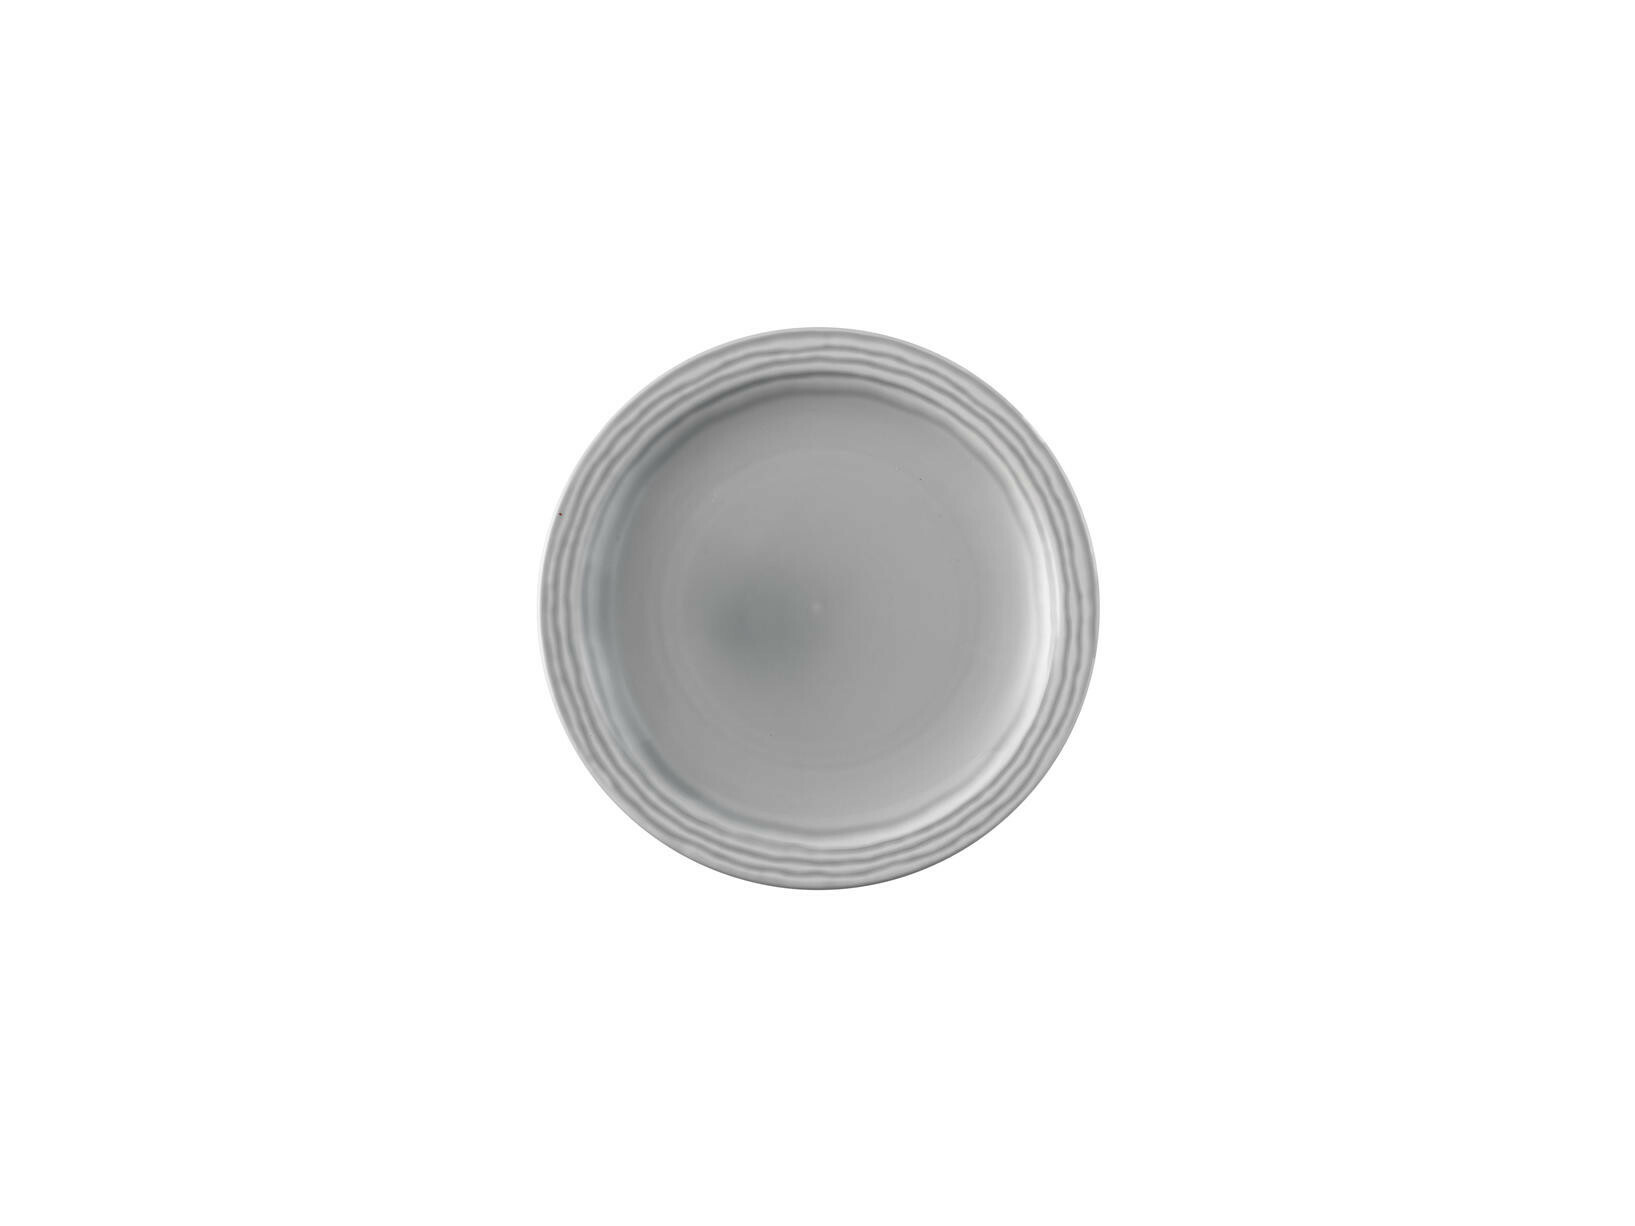 Dudson Harvest Norse Grey bord smalle rand 17,8 cm